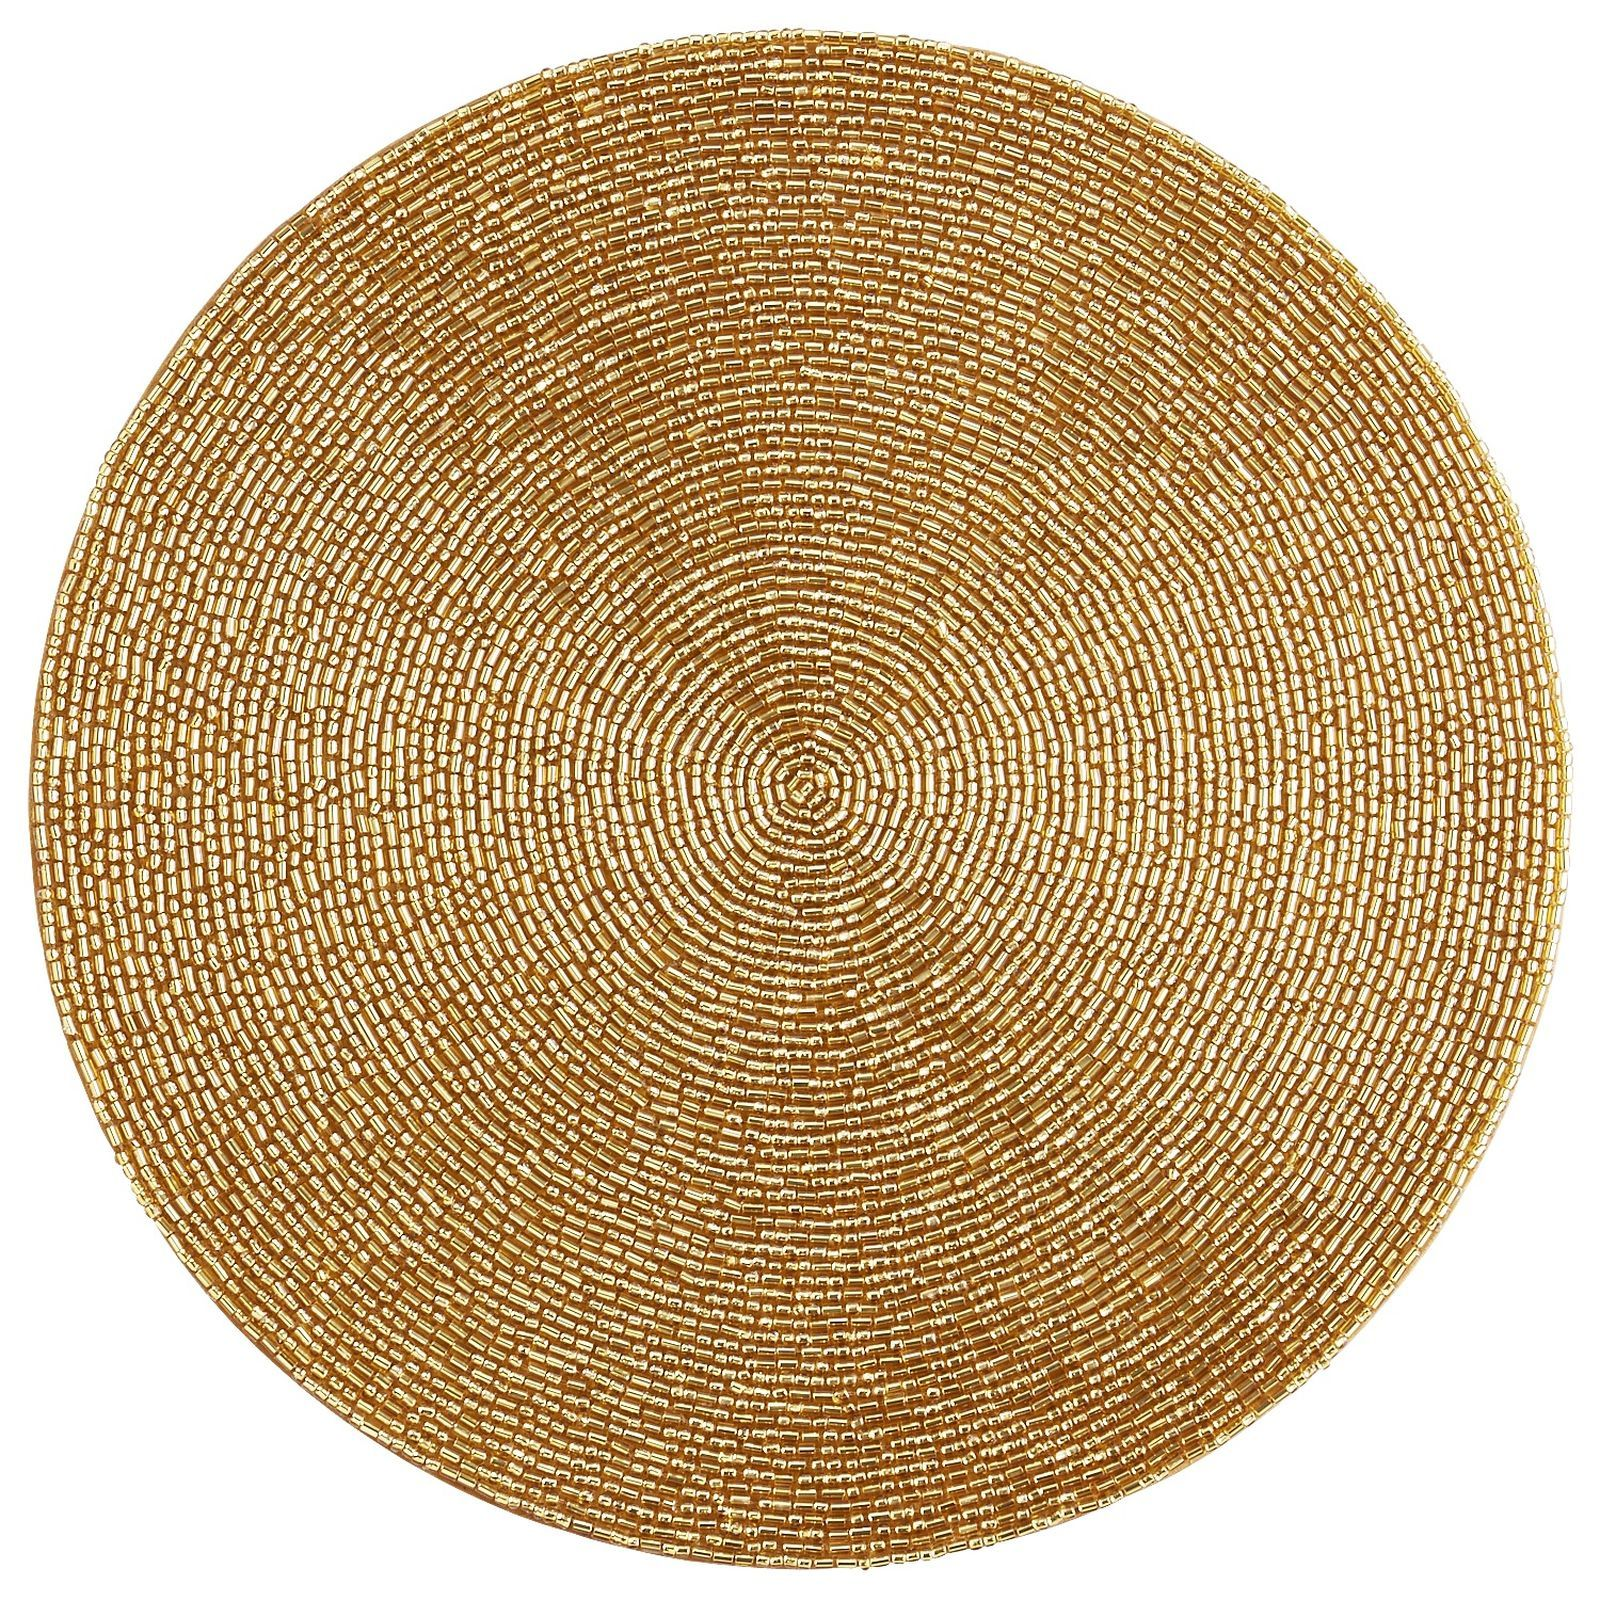 Beaded Placemat Gold Placemats Gold Placemats Linen Placemats